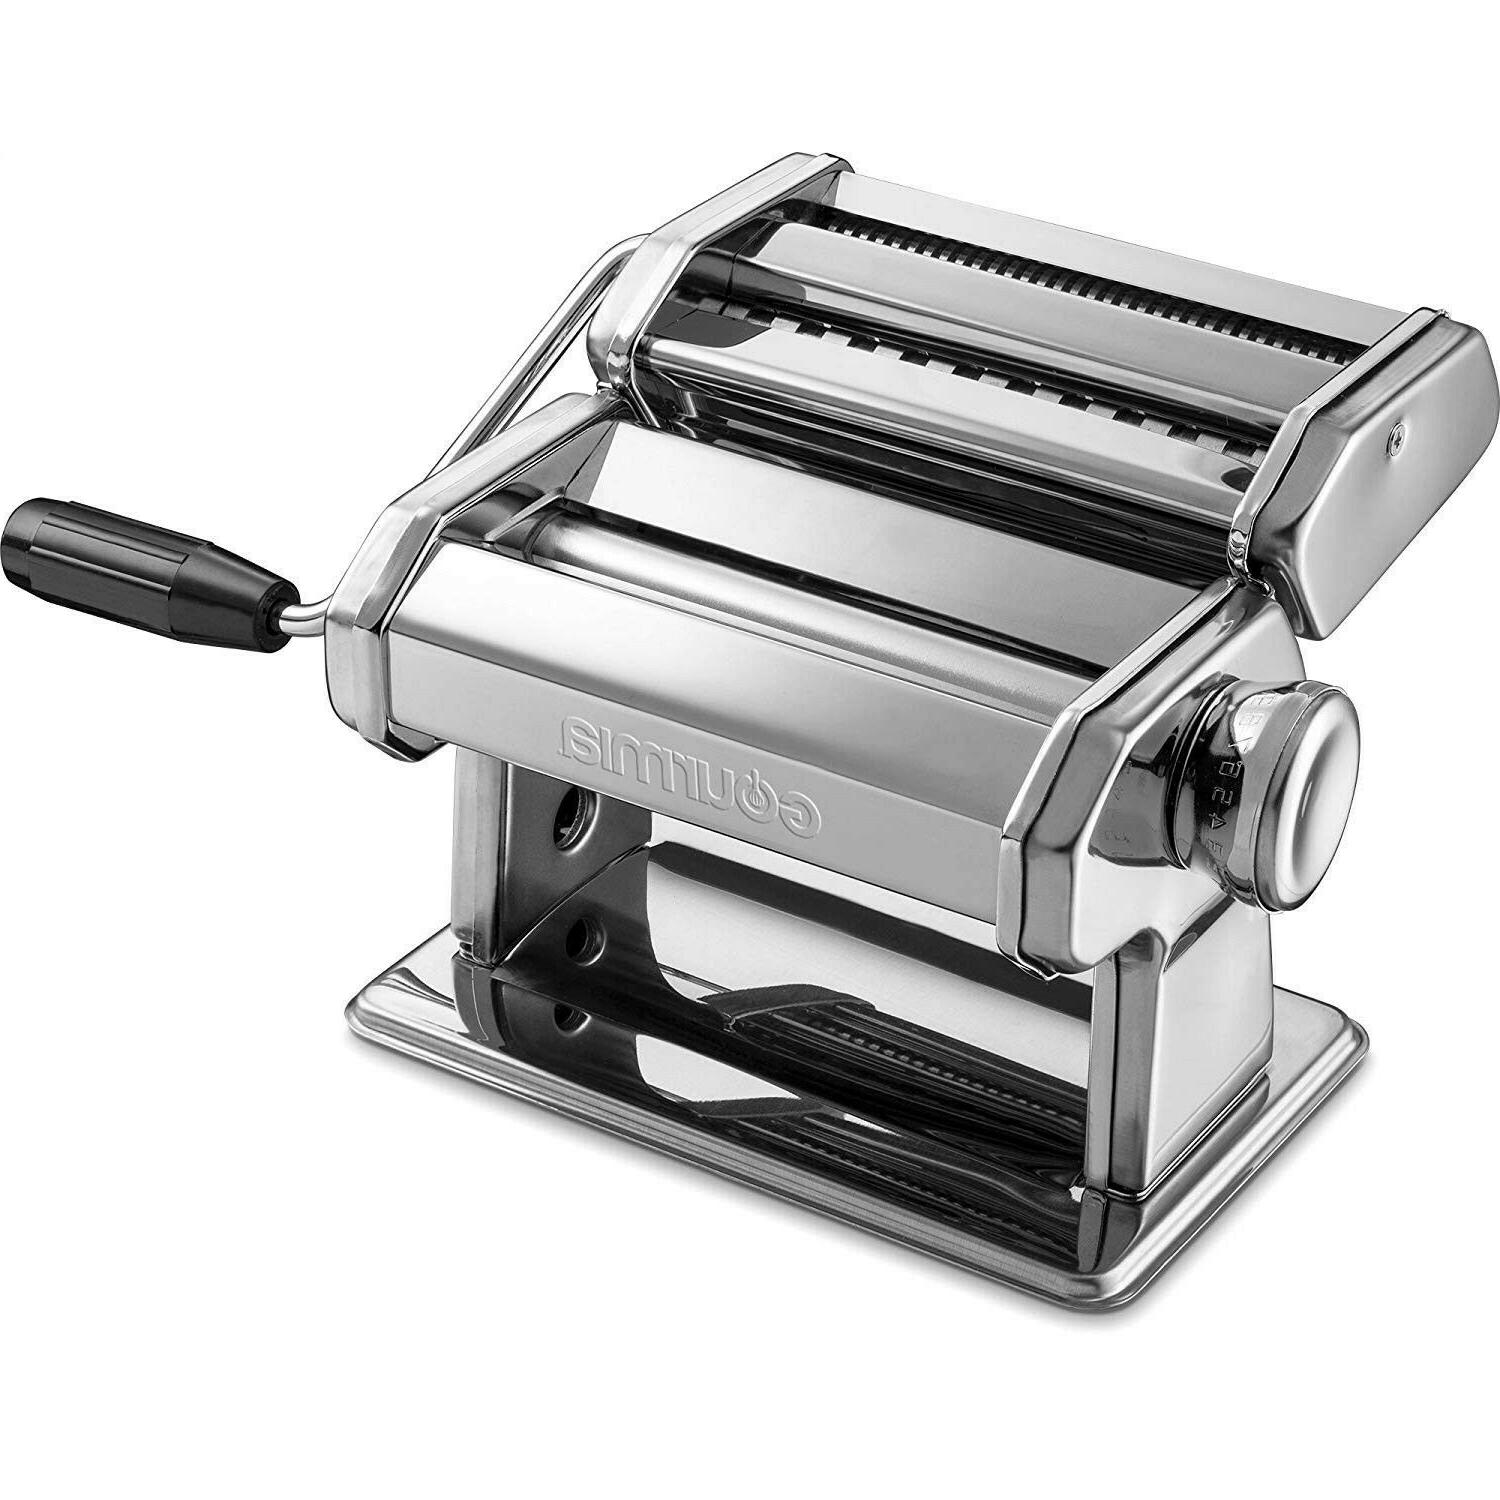 Maker Pasta Spaghetti Machine Slicer Cutter